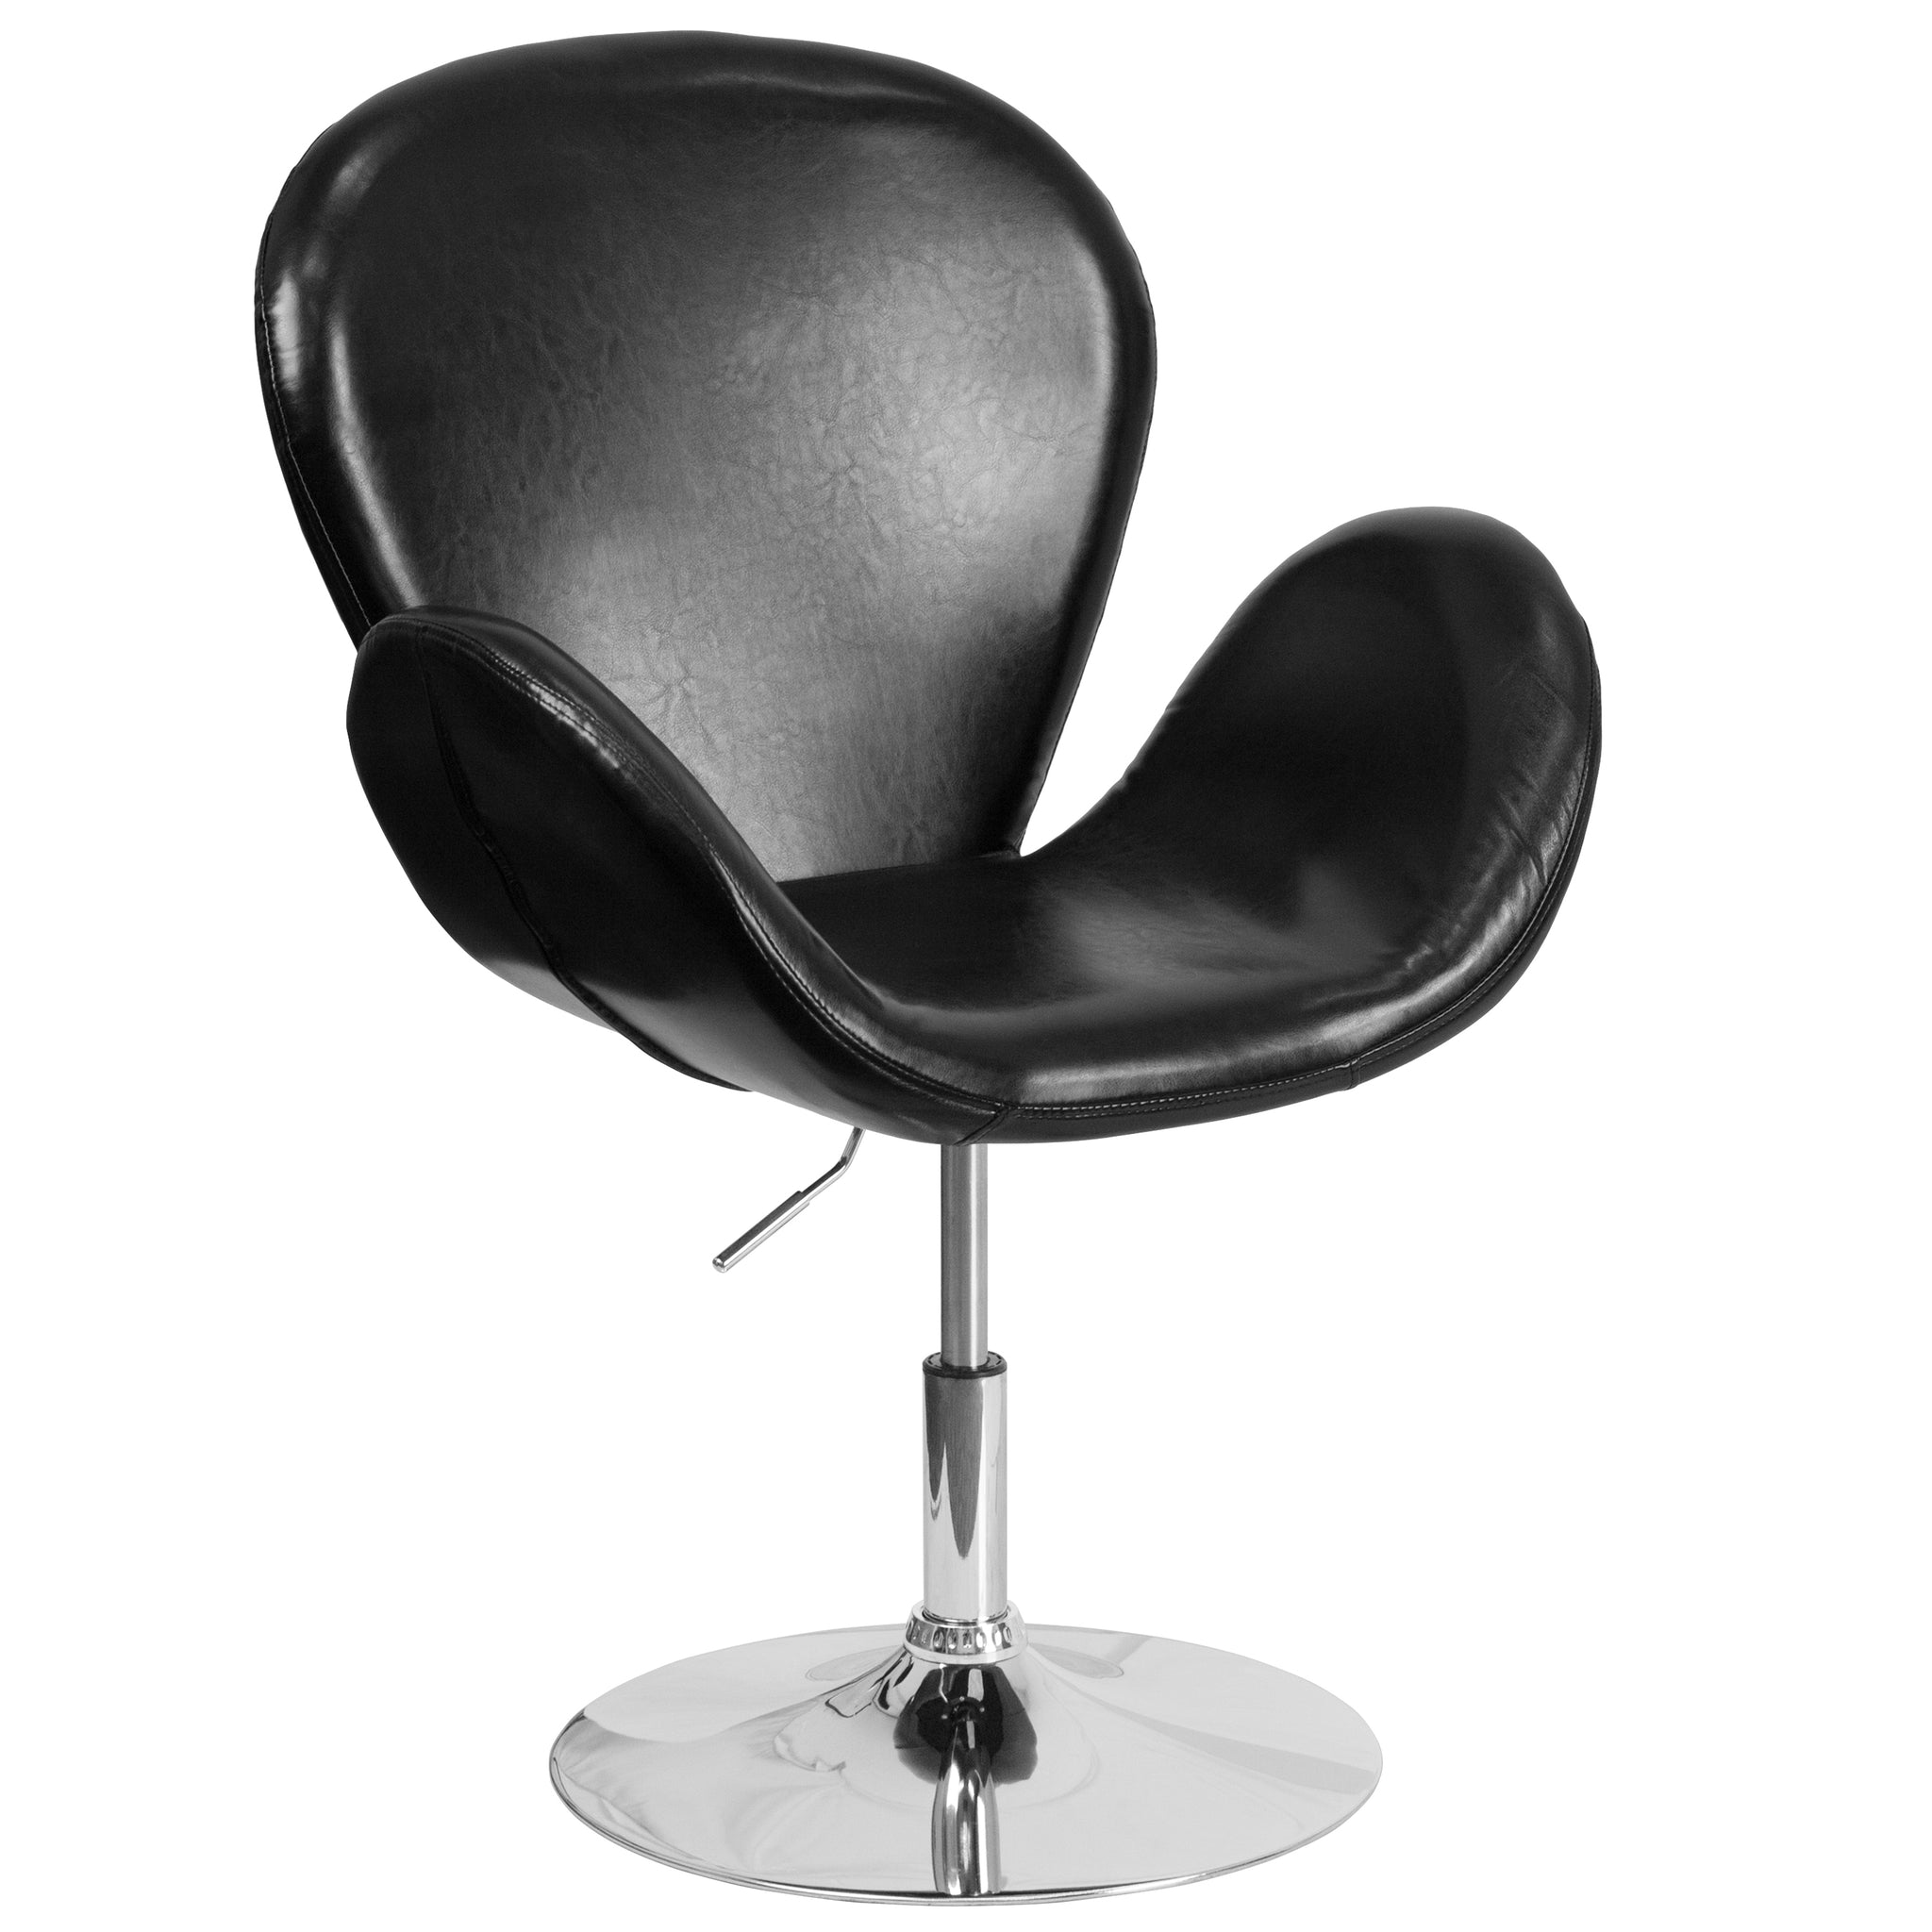 HERCULES Trestron Series Leather Reception Chair with Adjustable Height Seat: Black